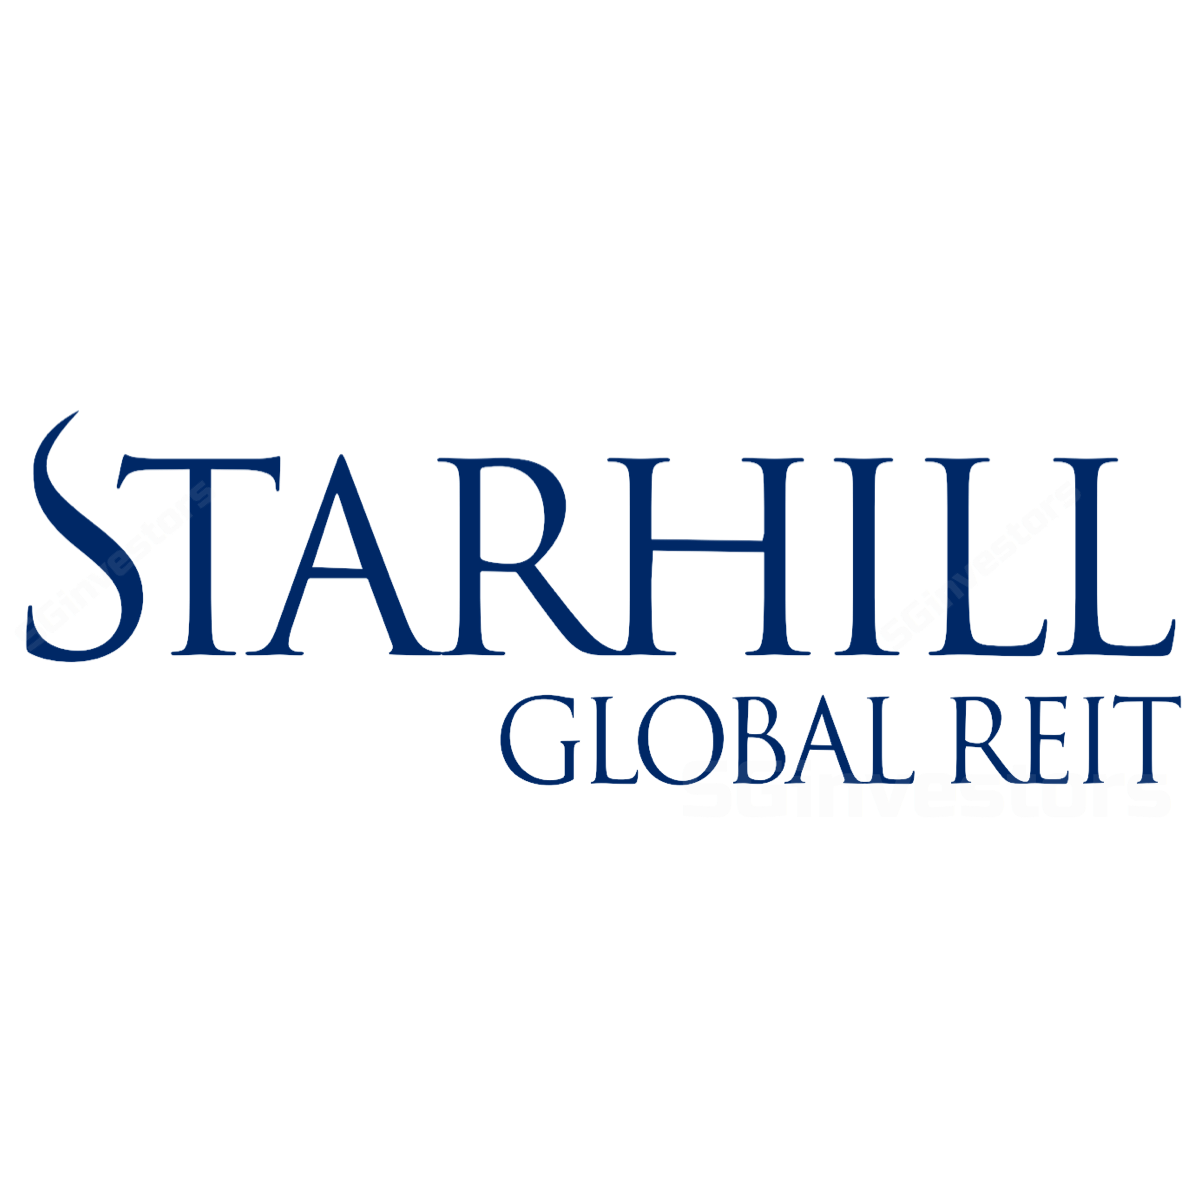 Starhill Global REIT - OCBC Investment 2017-08-01: Muted Results But Within Expectations